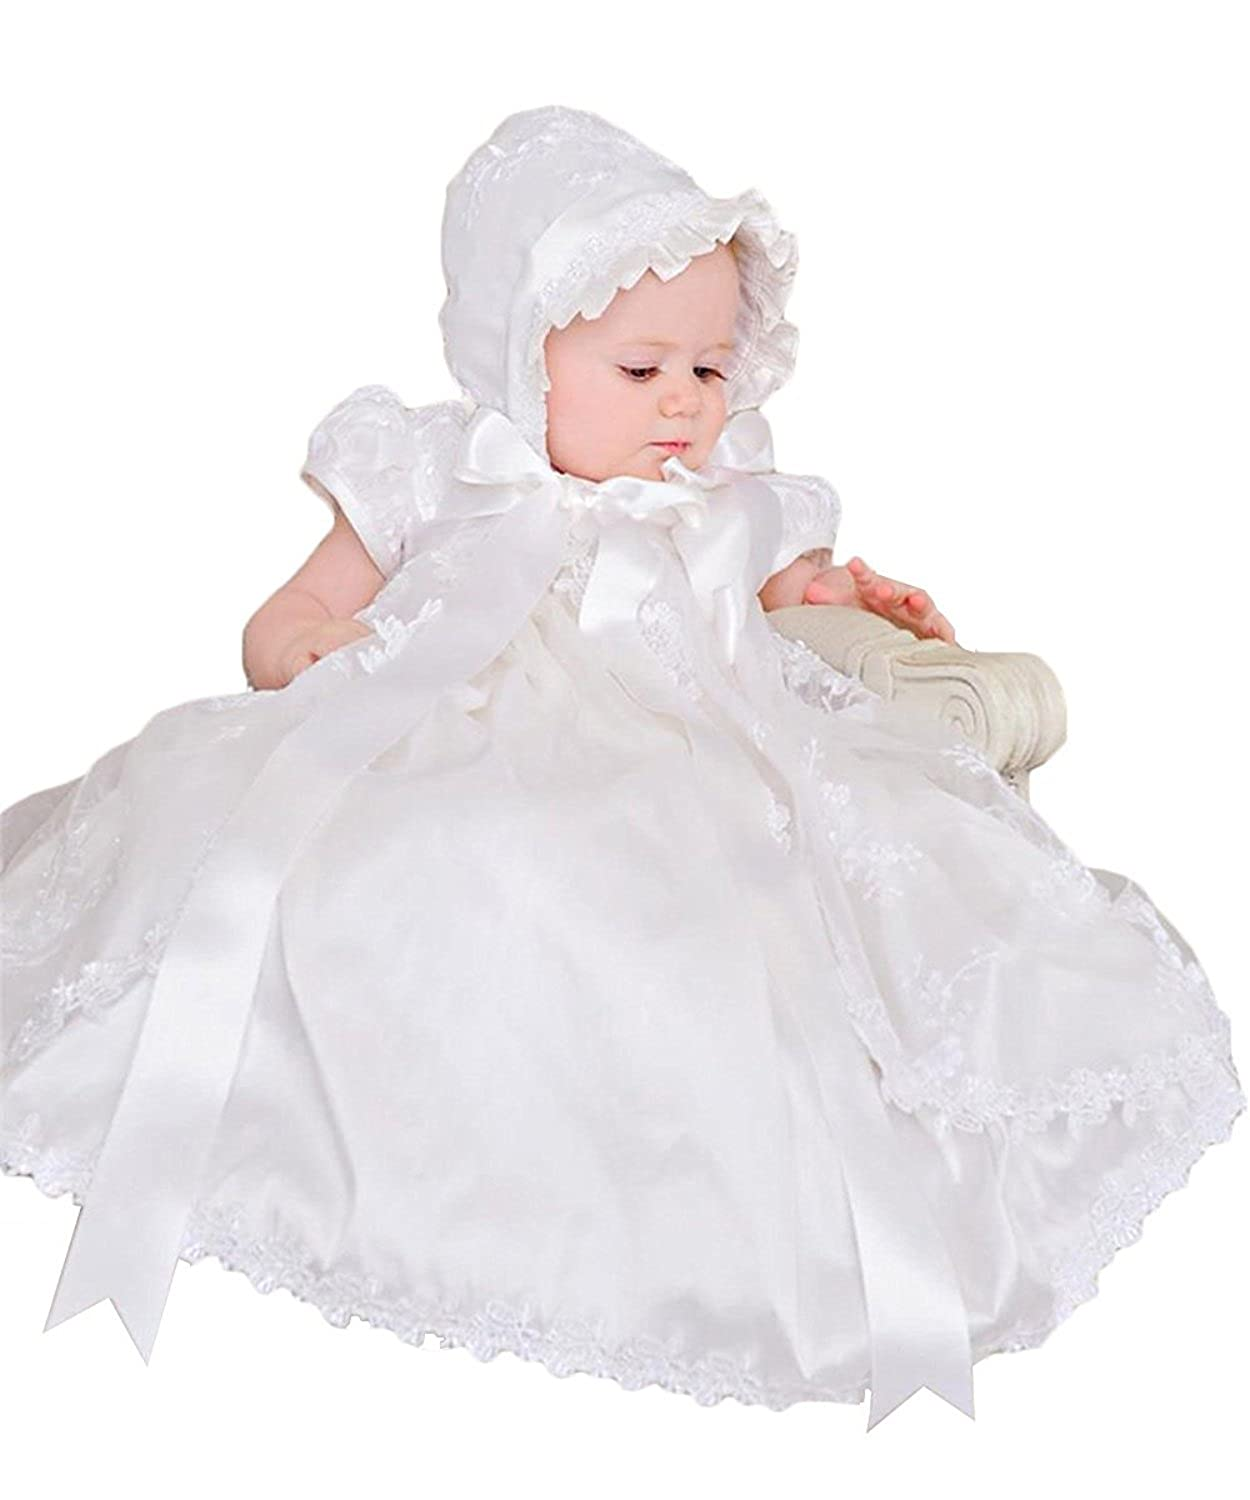 3b39a27b4 SHENLINQIJ Baby Girls White Christening Gown with Bonnet Infant Baptism  Dresses: Amazon.ca: Clothing & Accessories